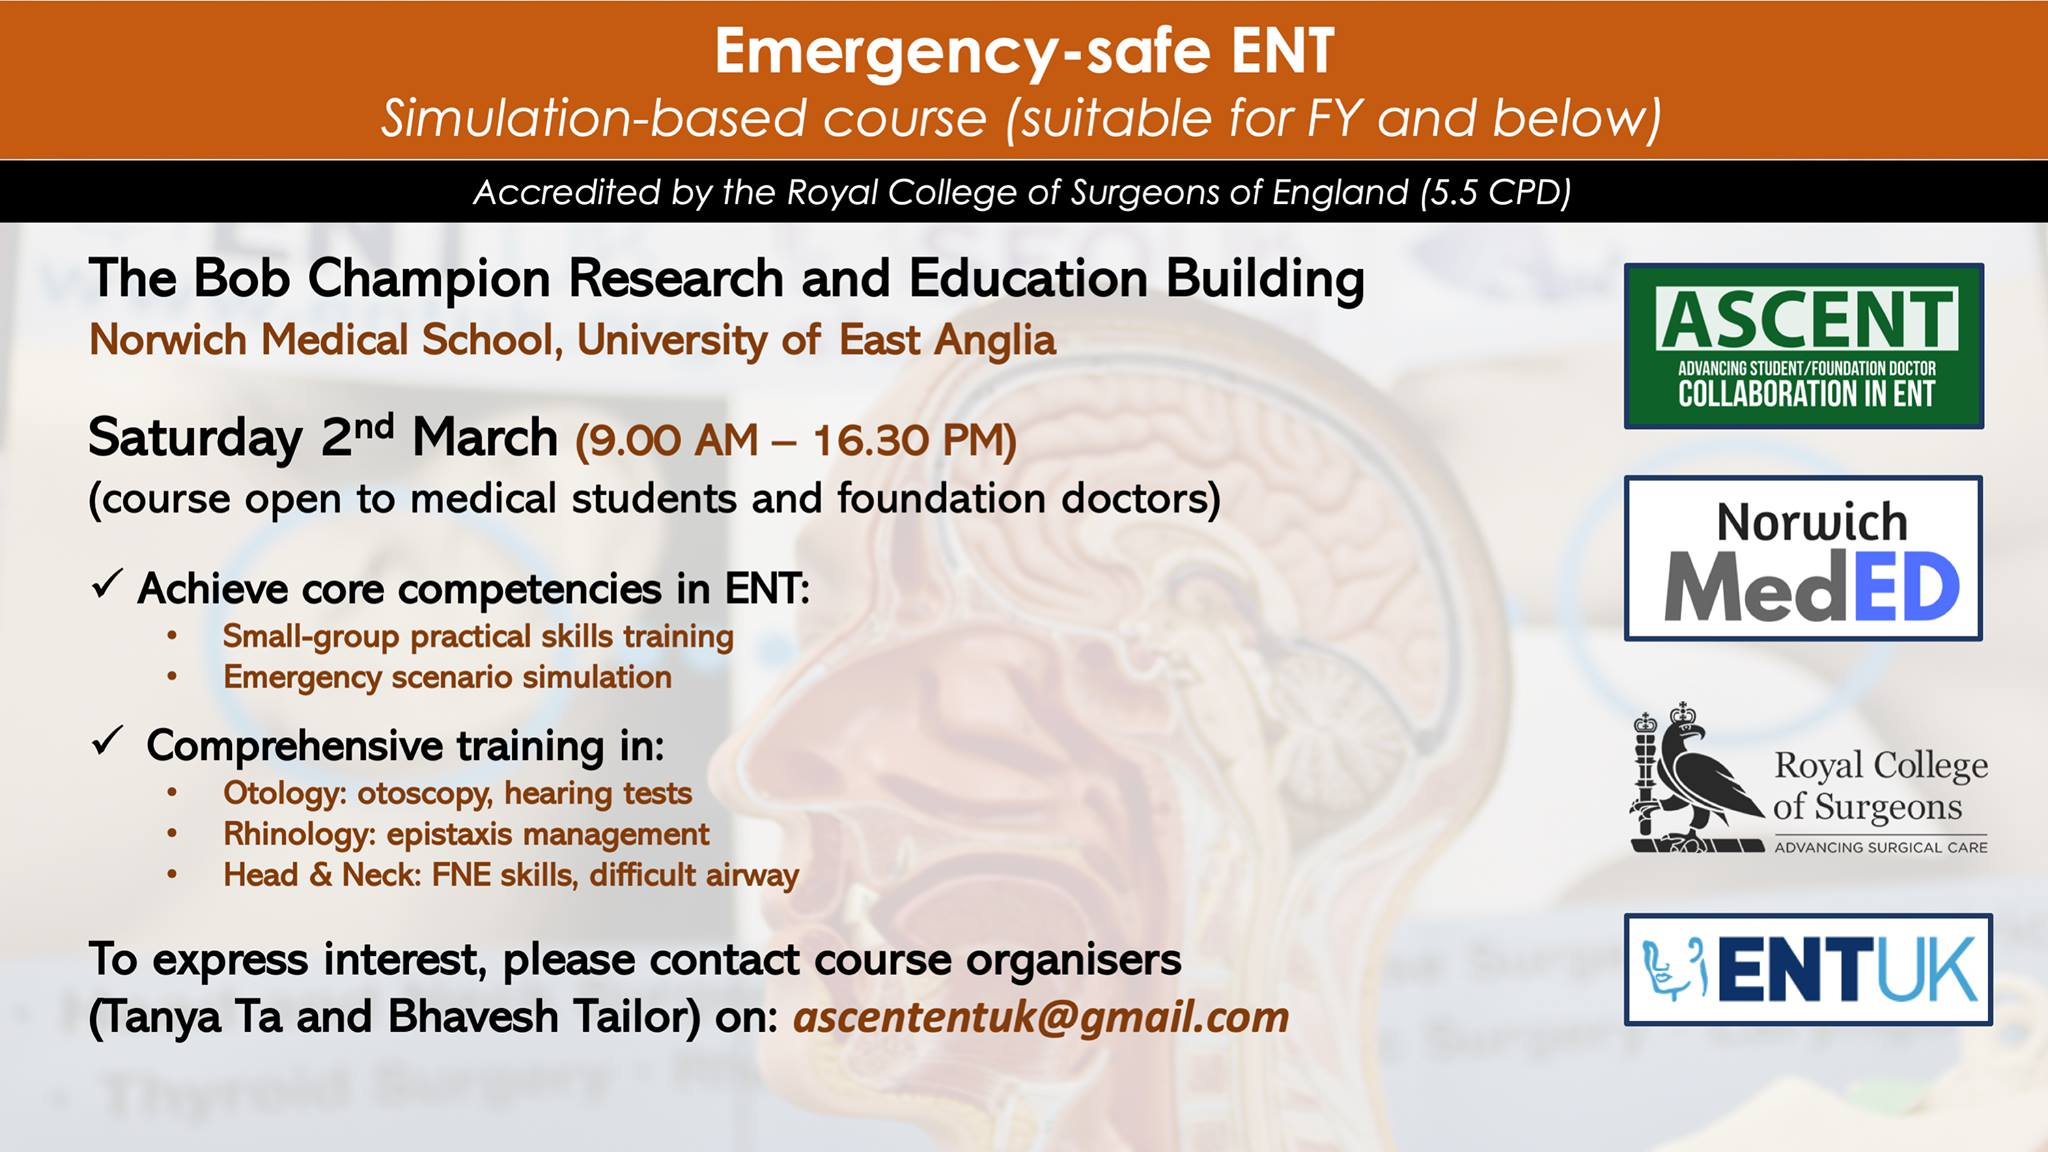 Emergency-safe ENT - Simulation Based Course | The Journal of